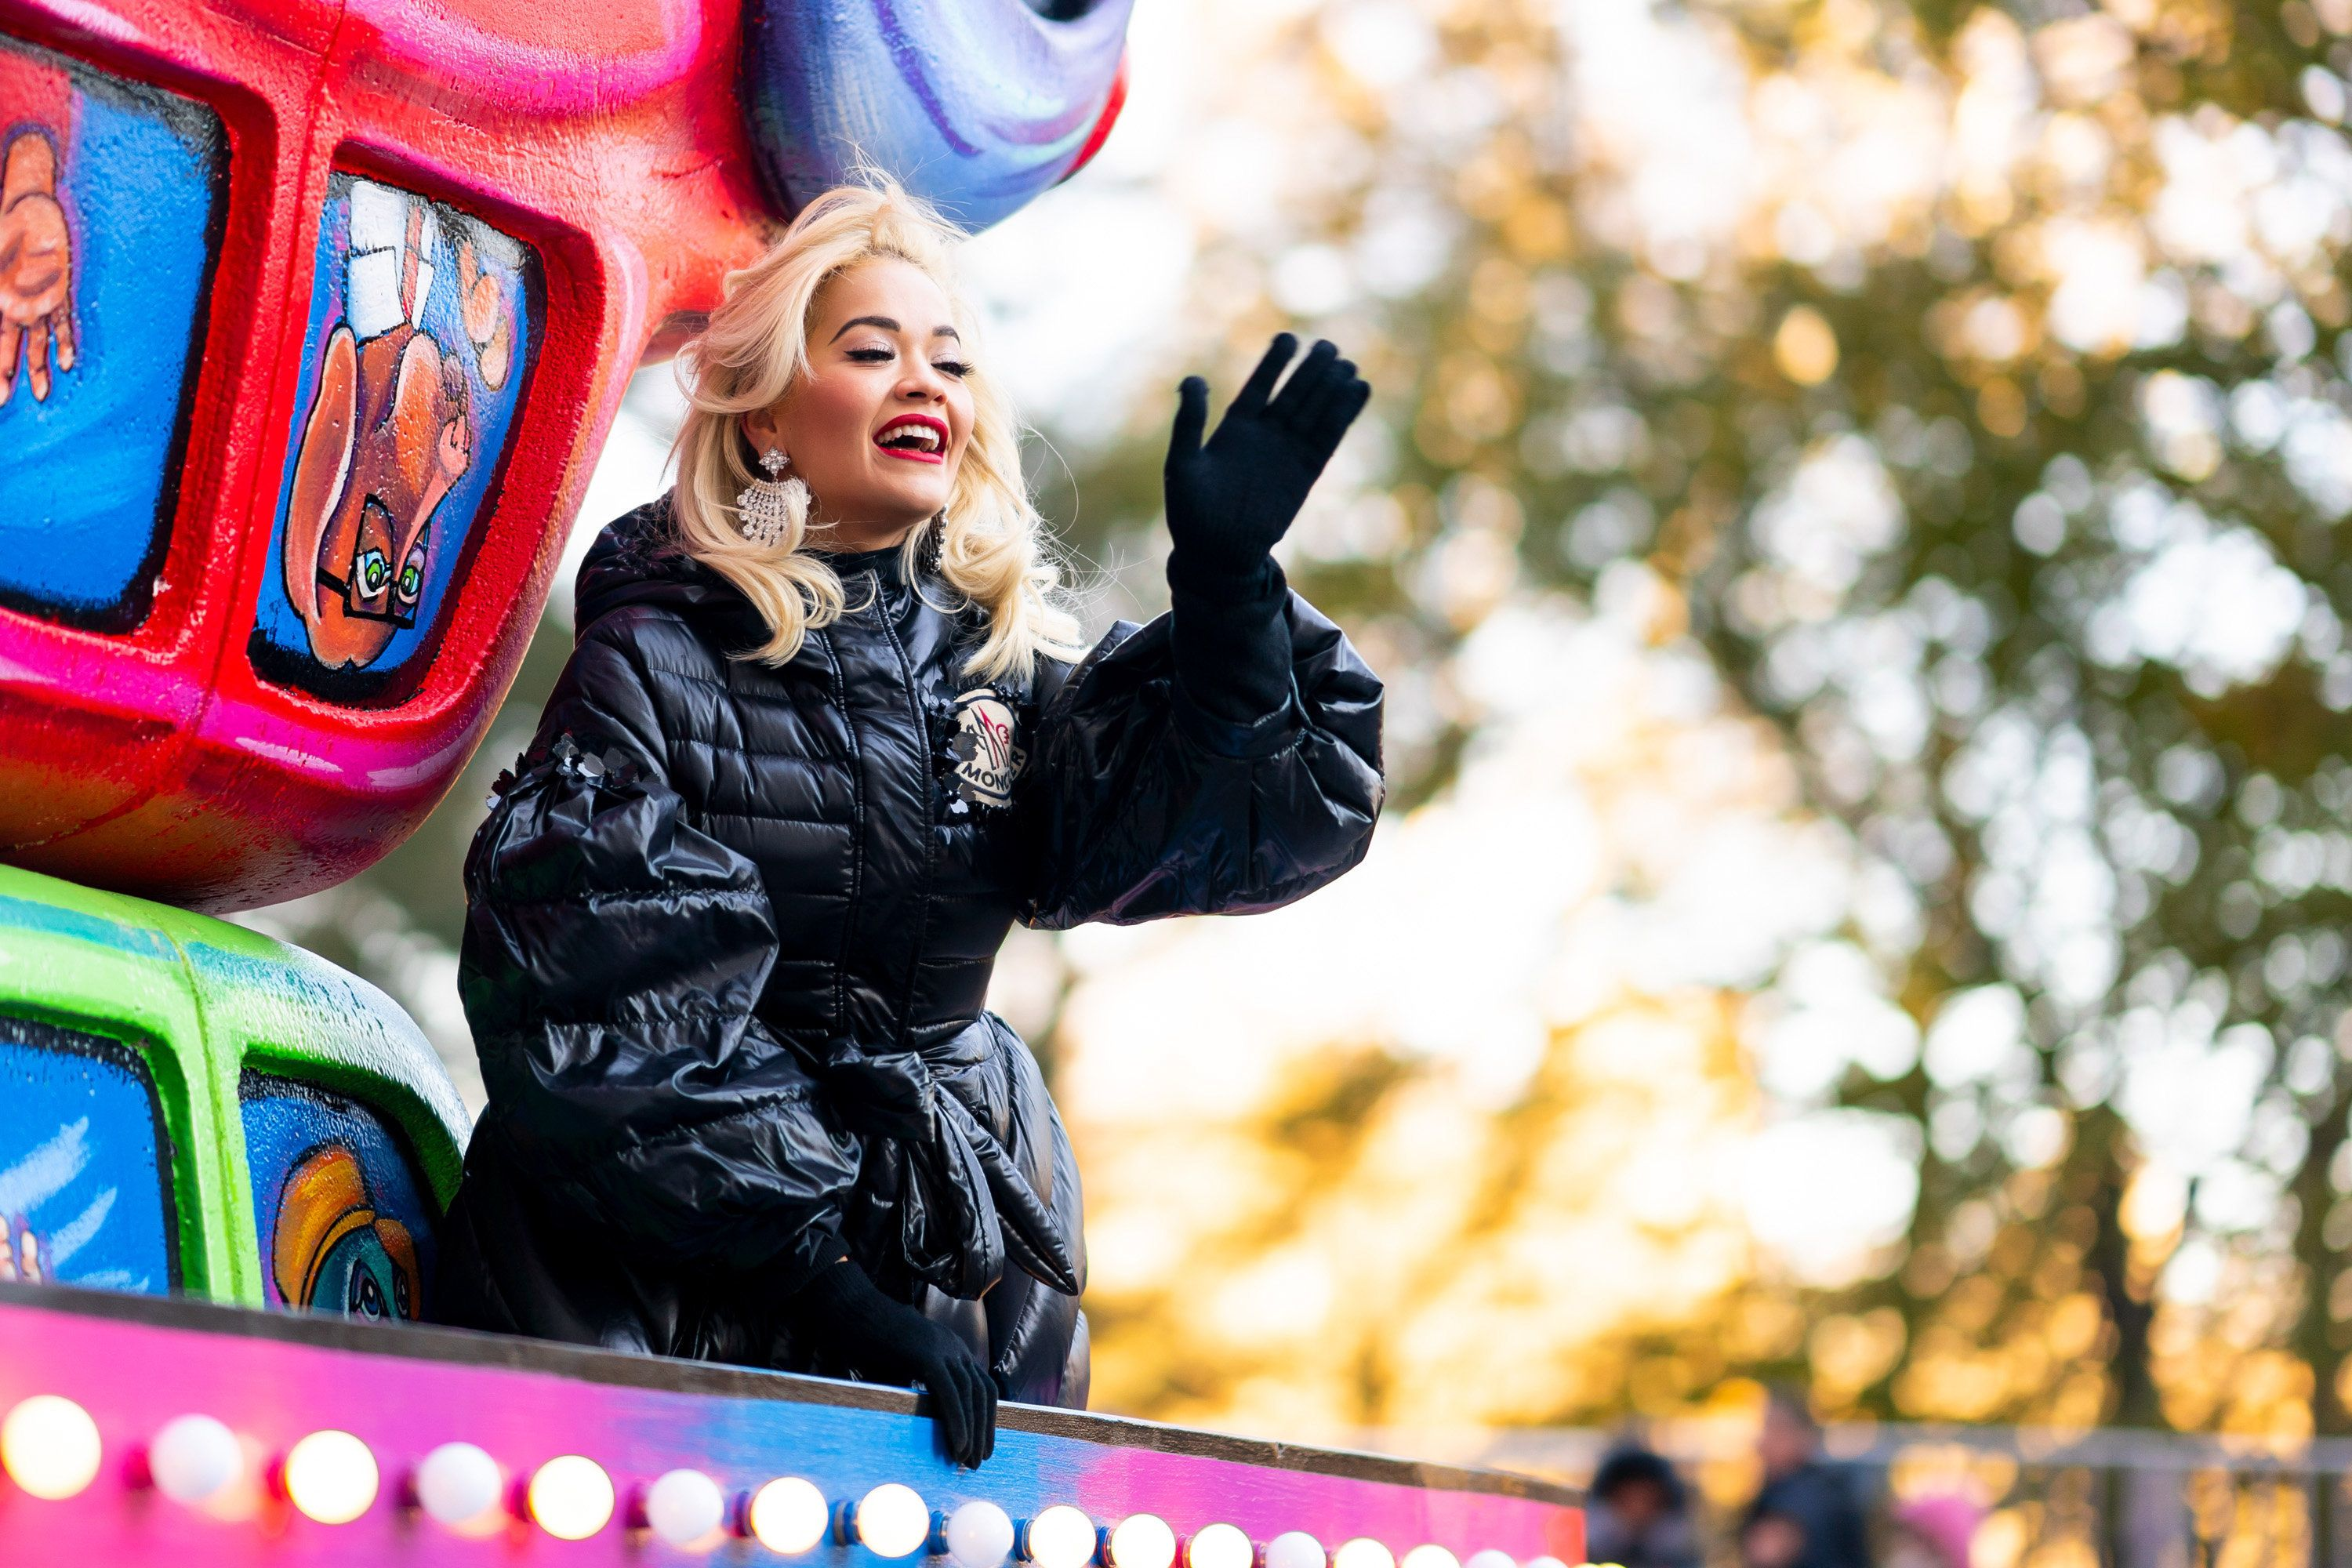 Rita Ora Suffers Thanksgiving Parade Lip-Sync Fail, But Insists There Wasn't Technology To Sing